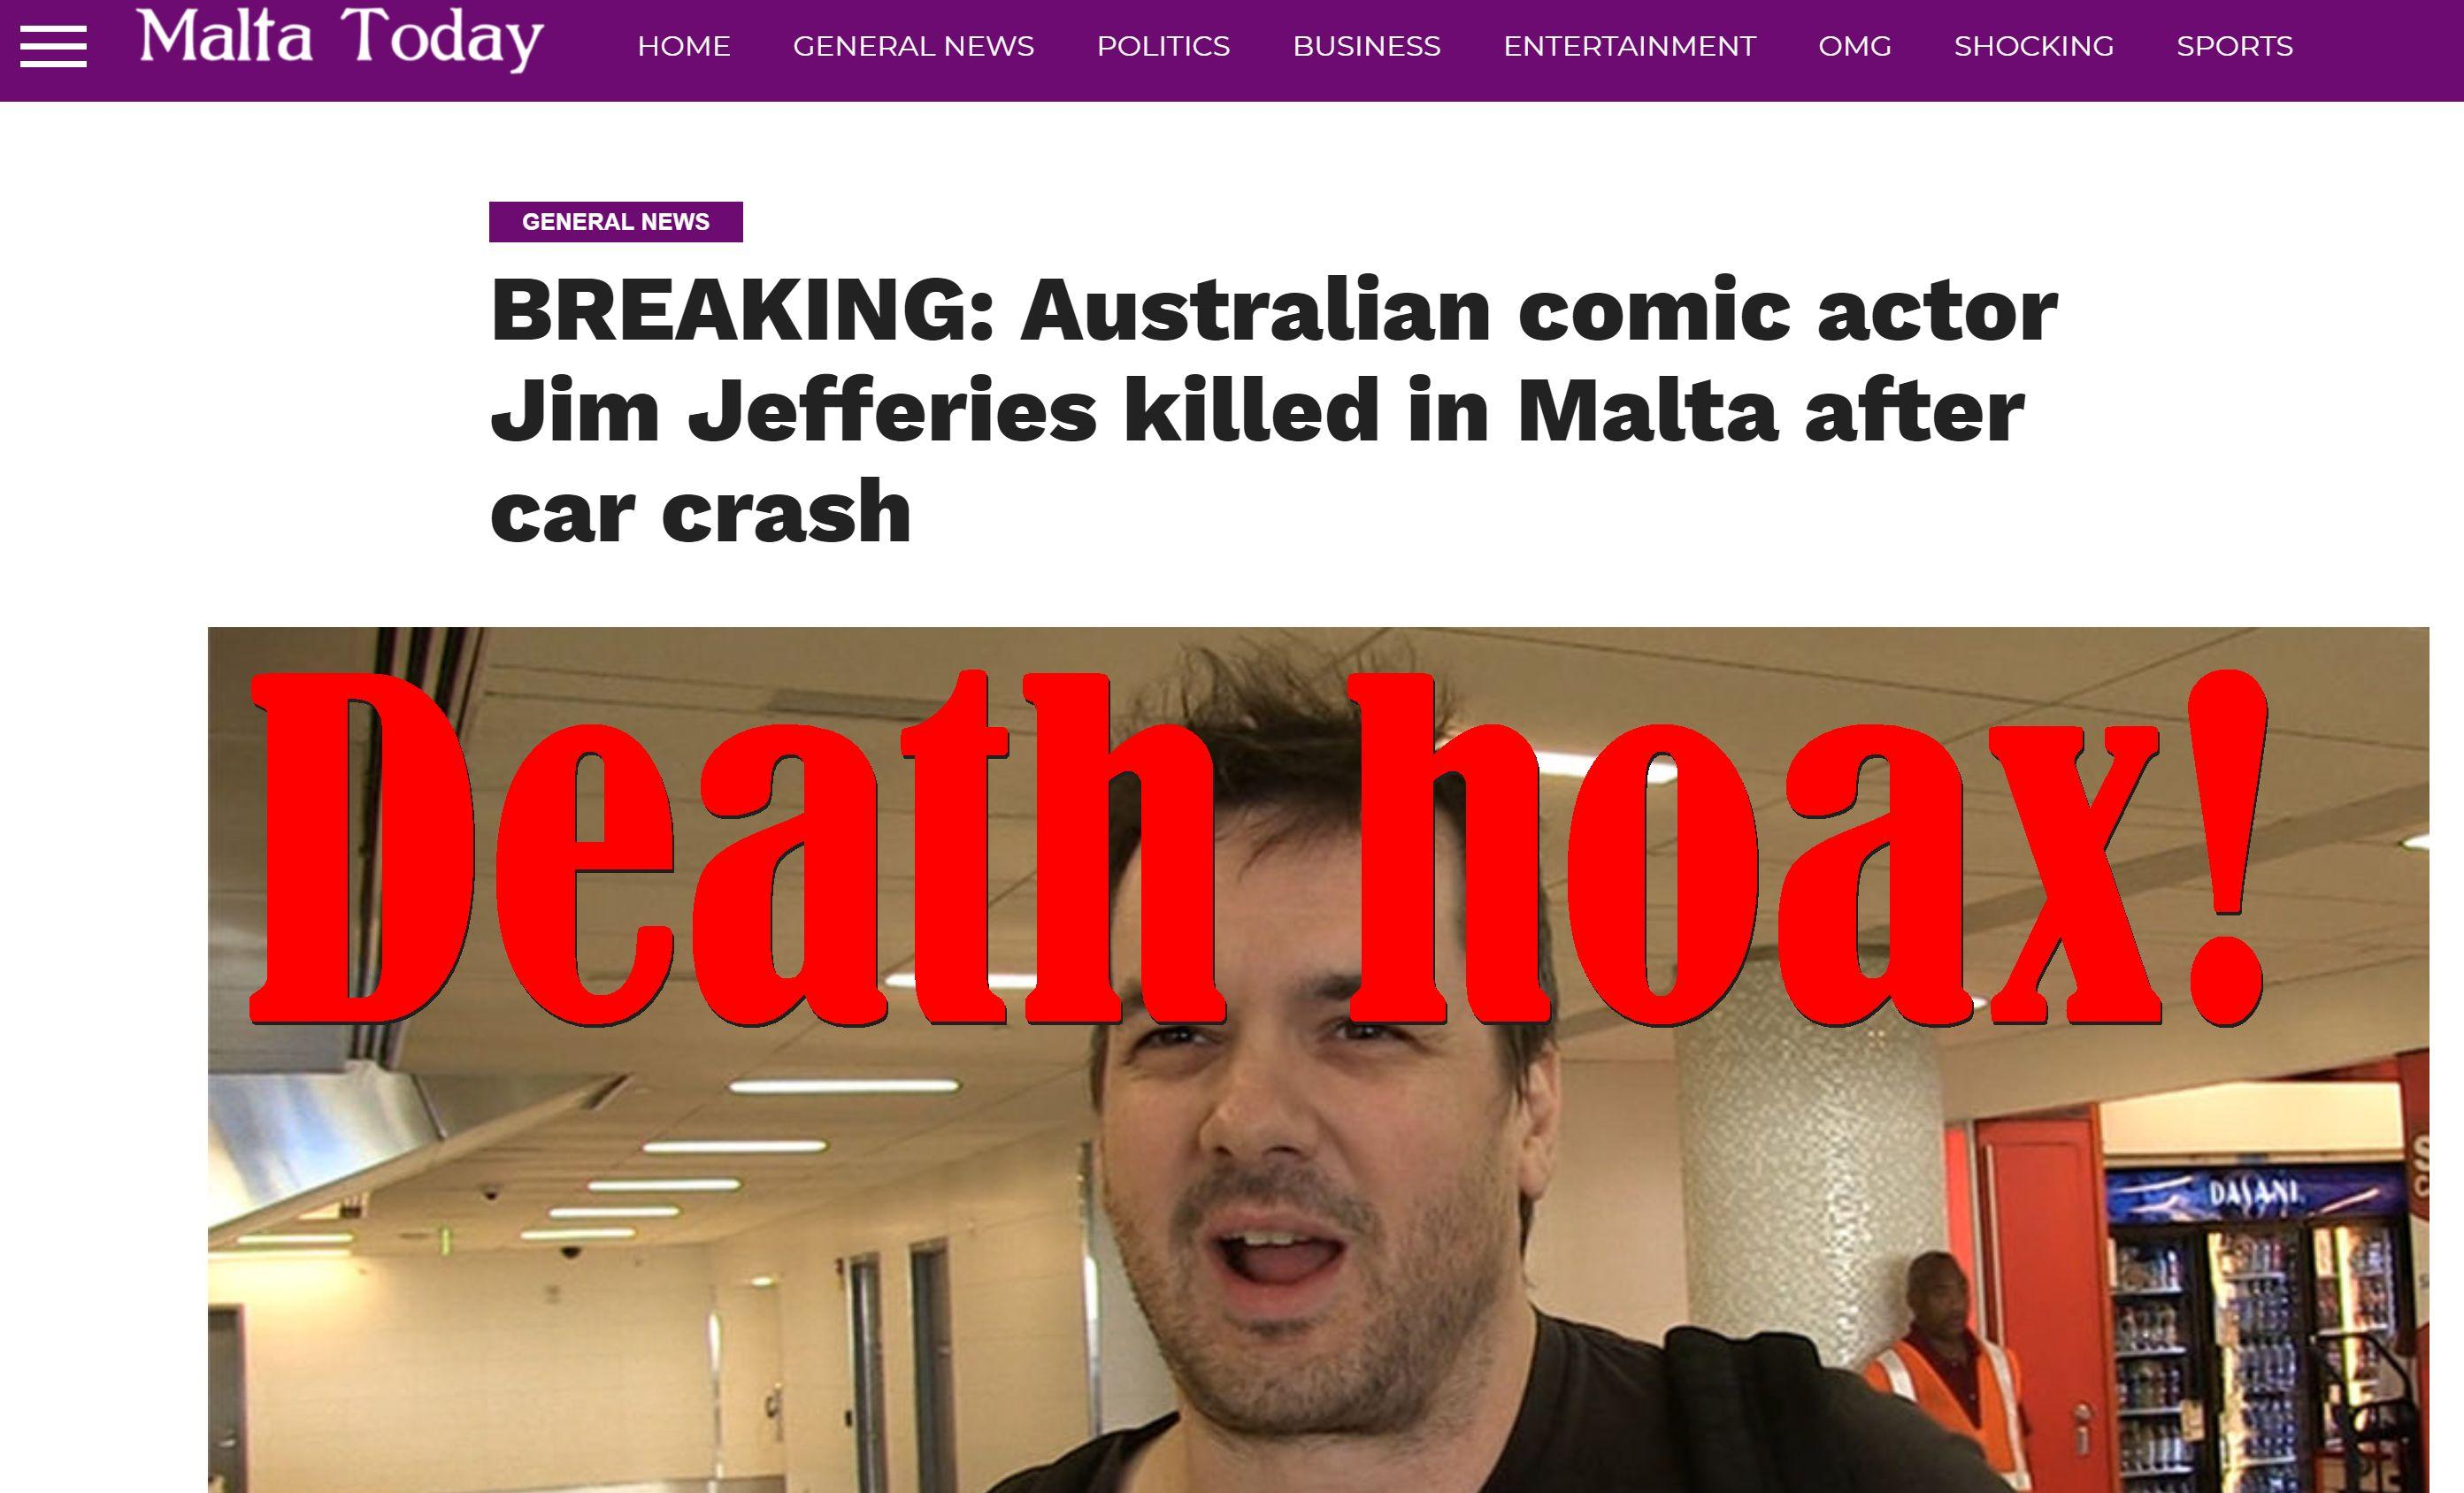 Fake News: Australian Comic Actor Jim Jefferies NOT Killed in Malta After Car Crash